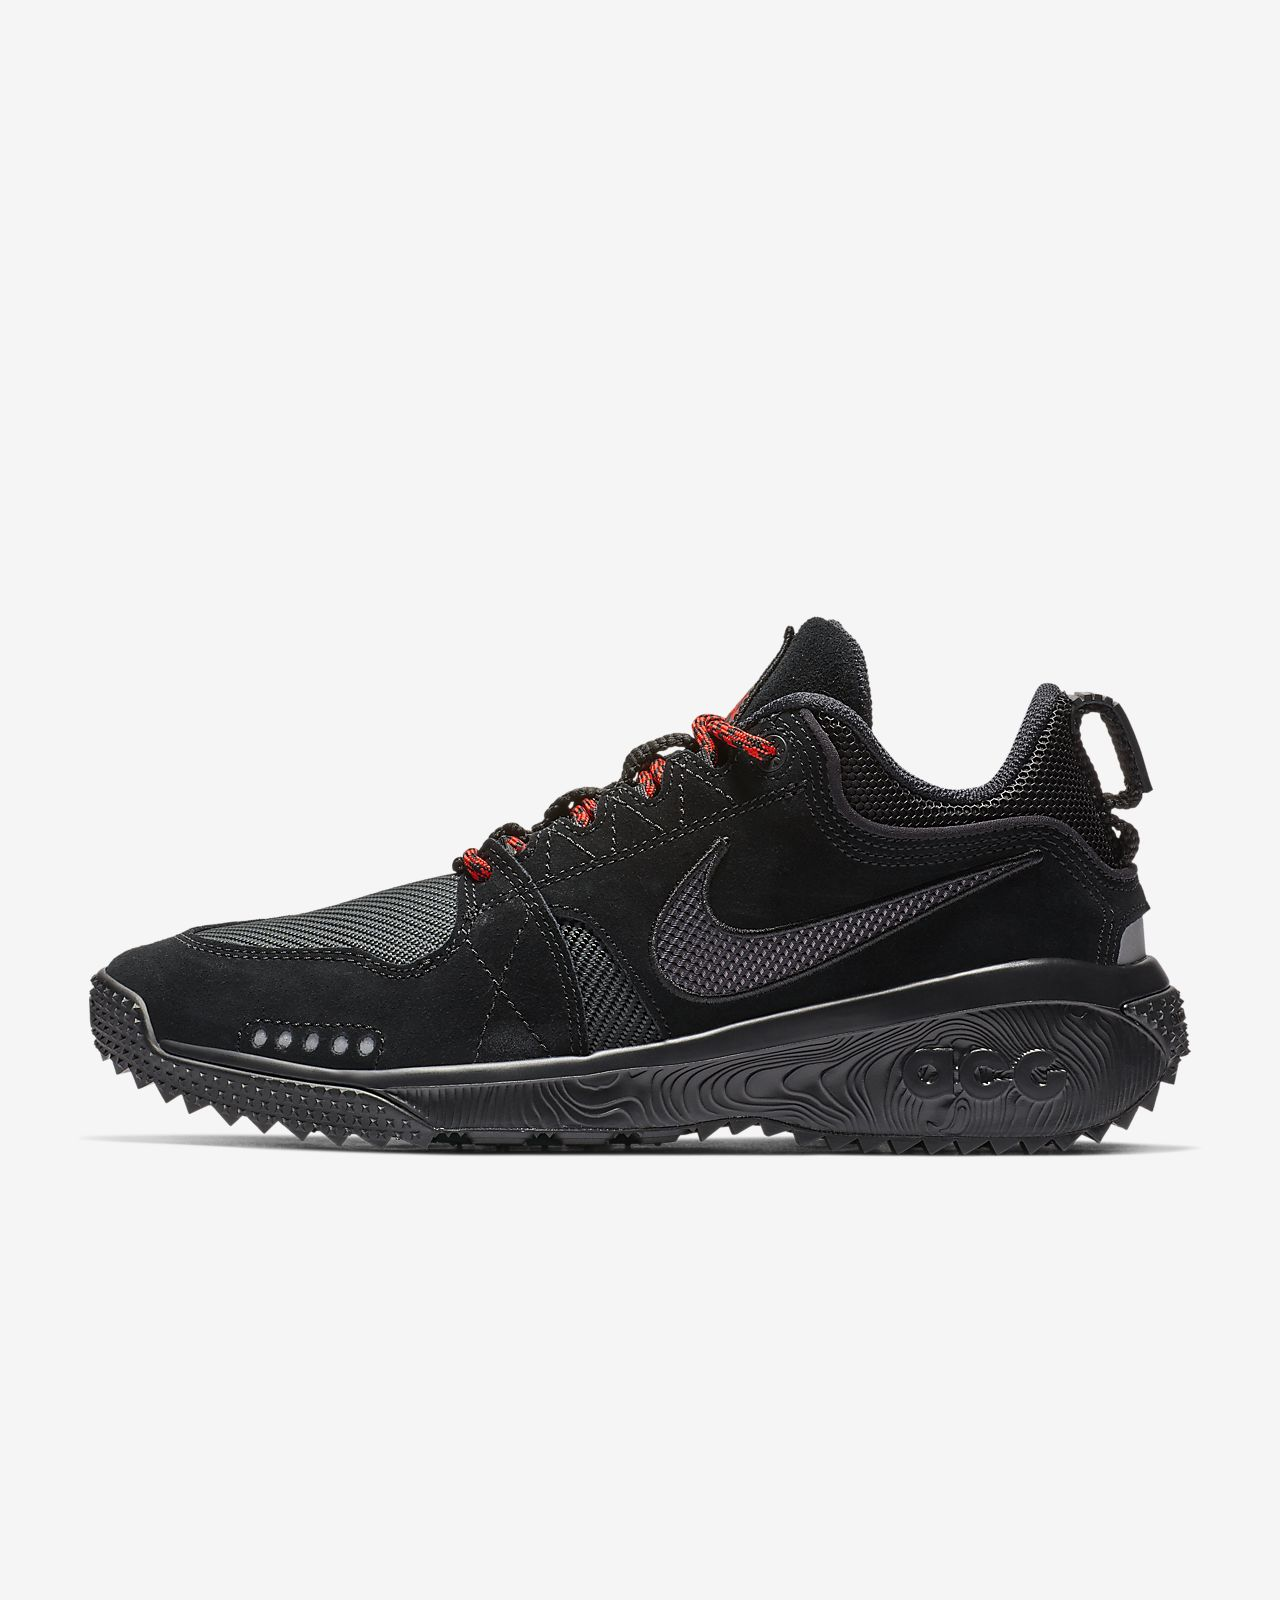 Pour Acg Dog Mountain Chaussure Nike Homme Y7g6yvbf